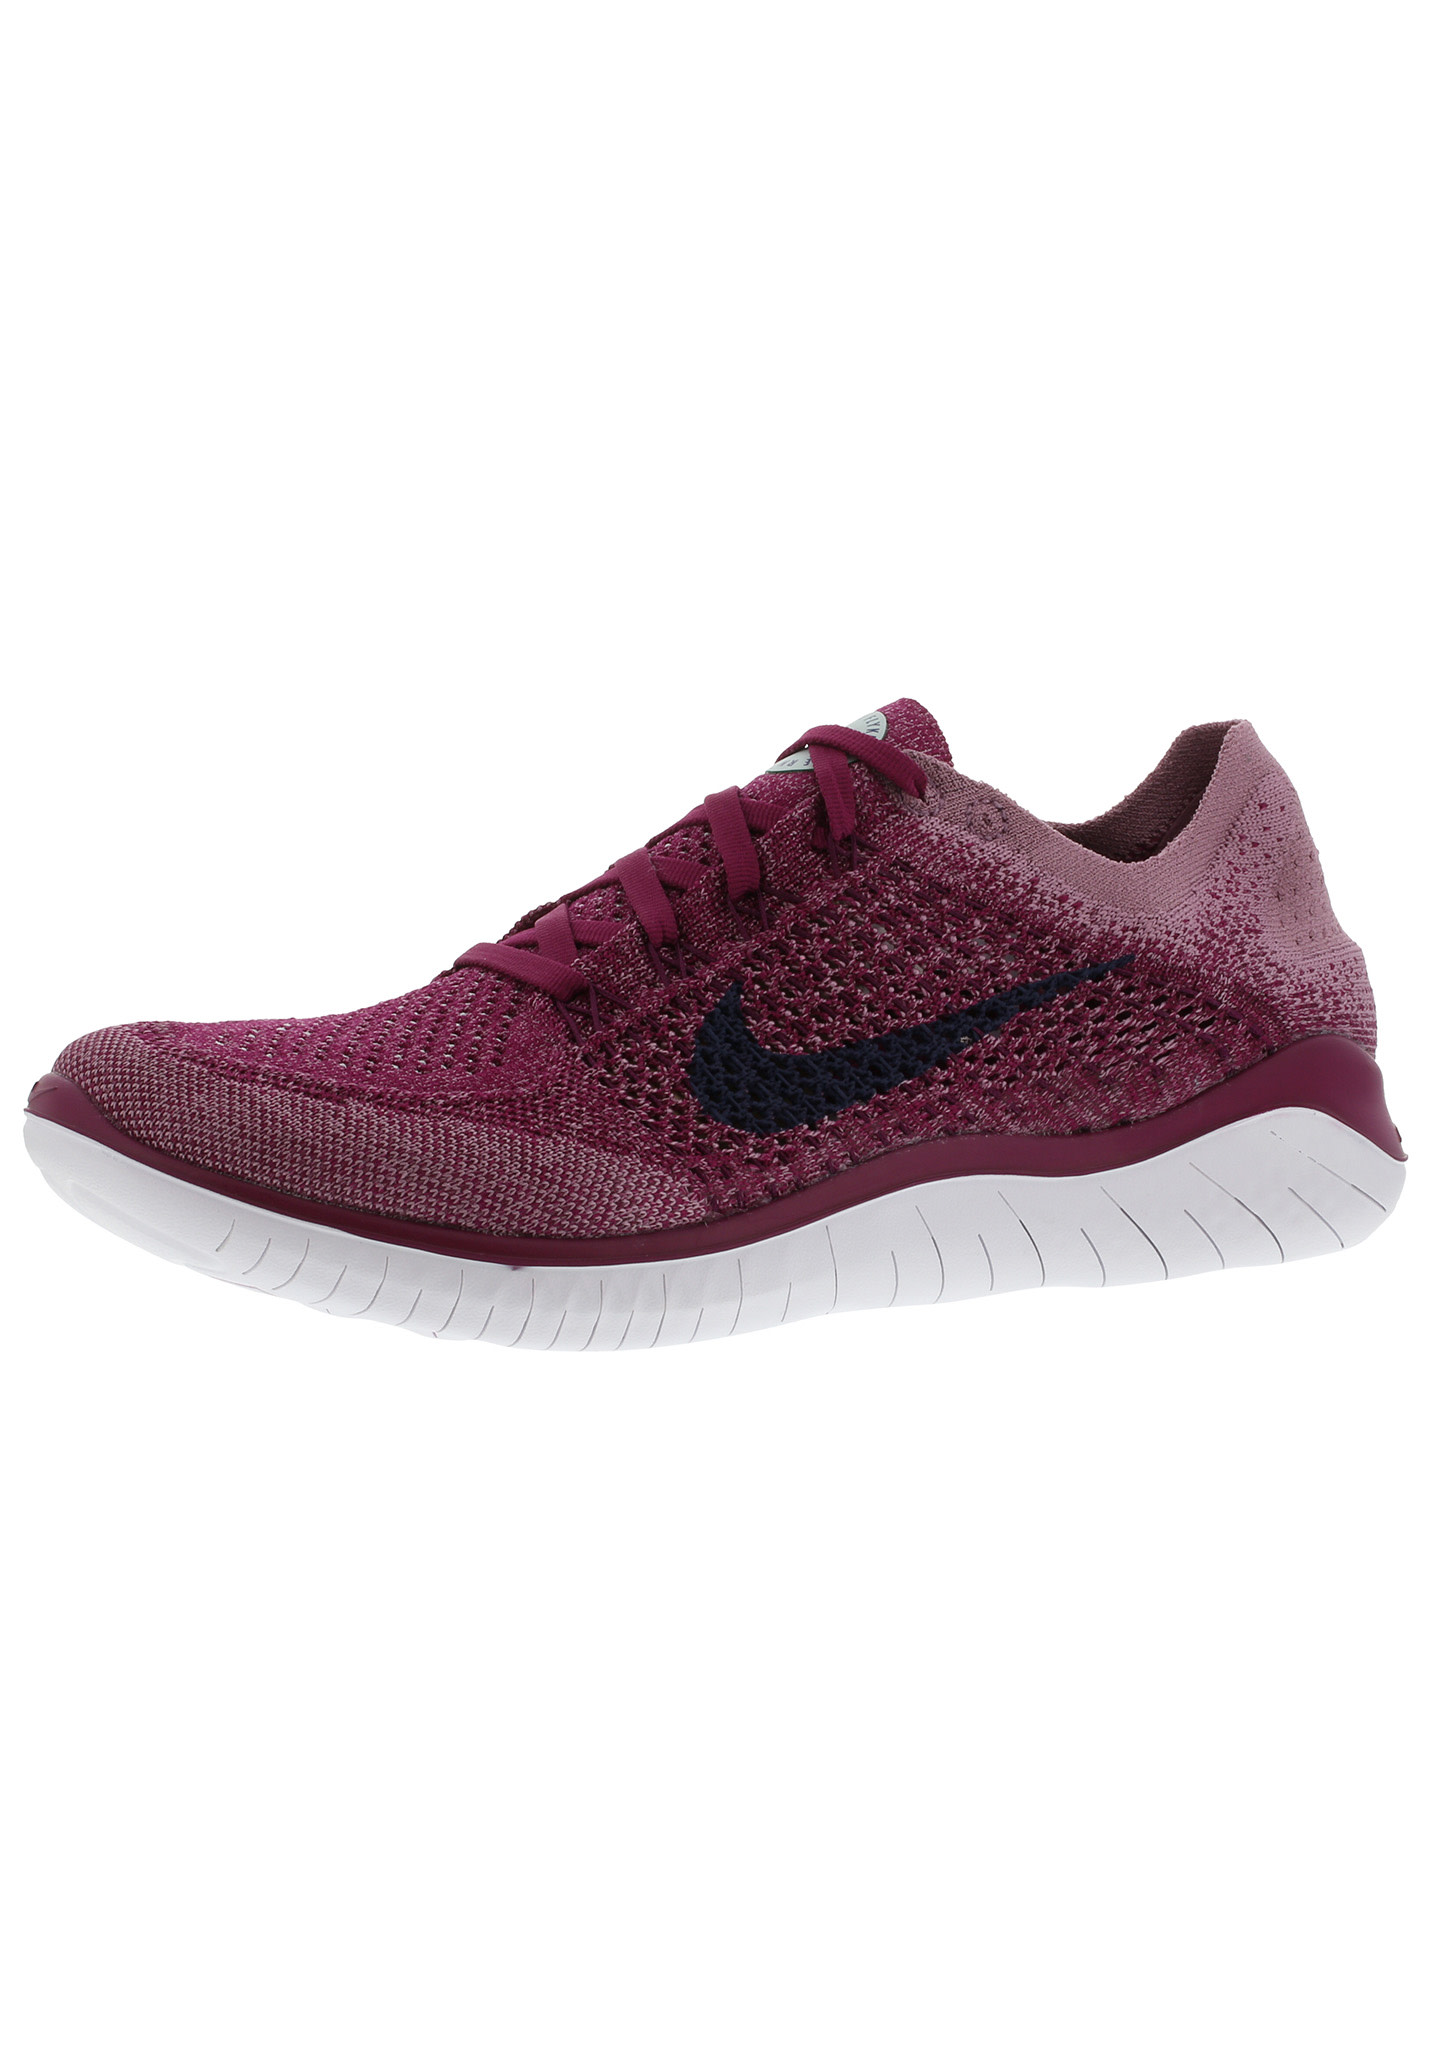 b71ff249f072 Nike Free RN Flyknit 2018 - Running shoes for Women - Pink